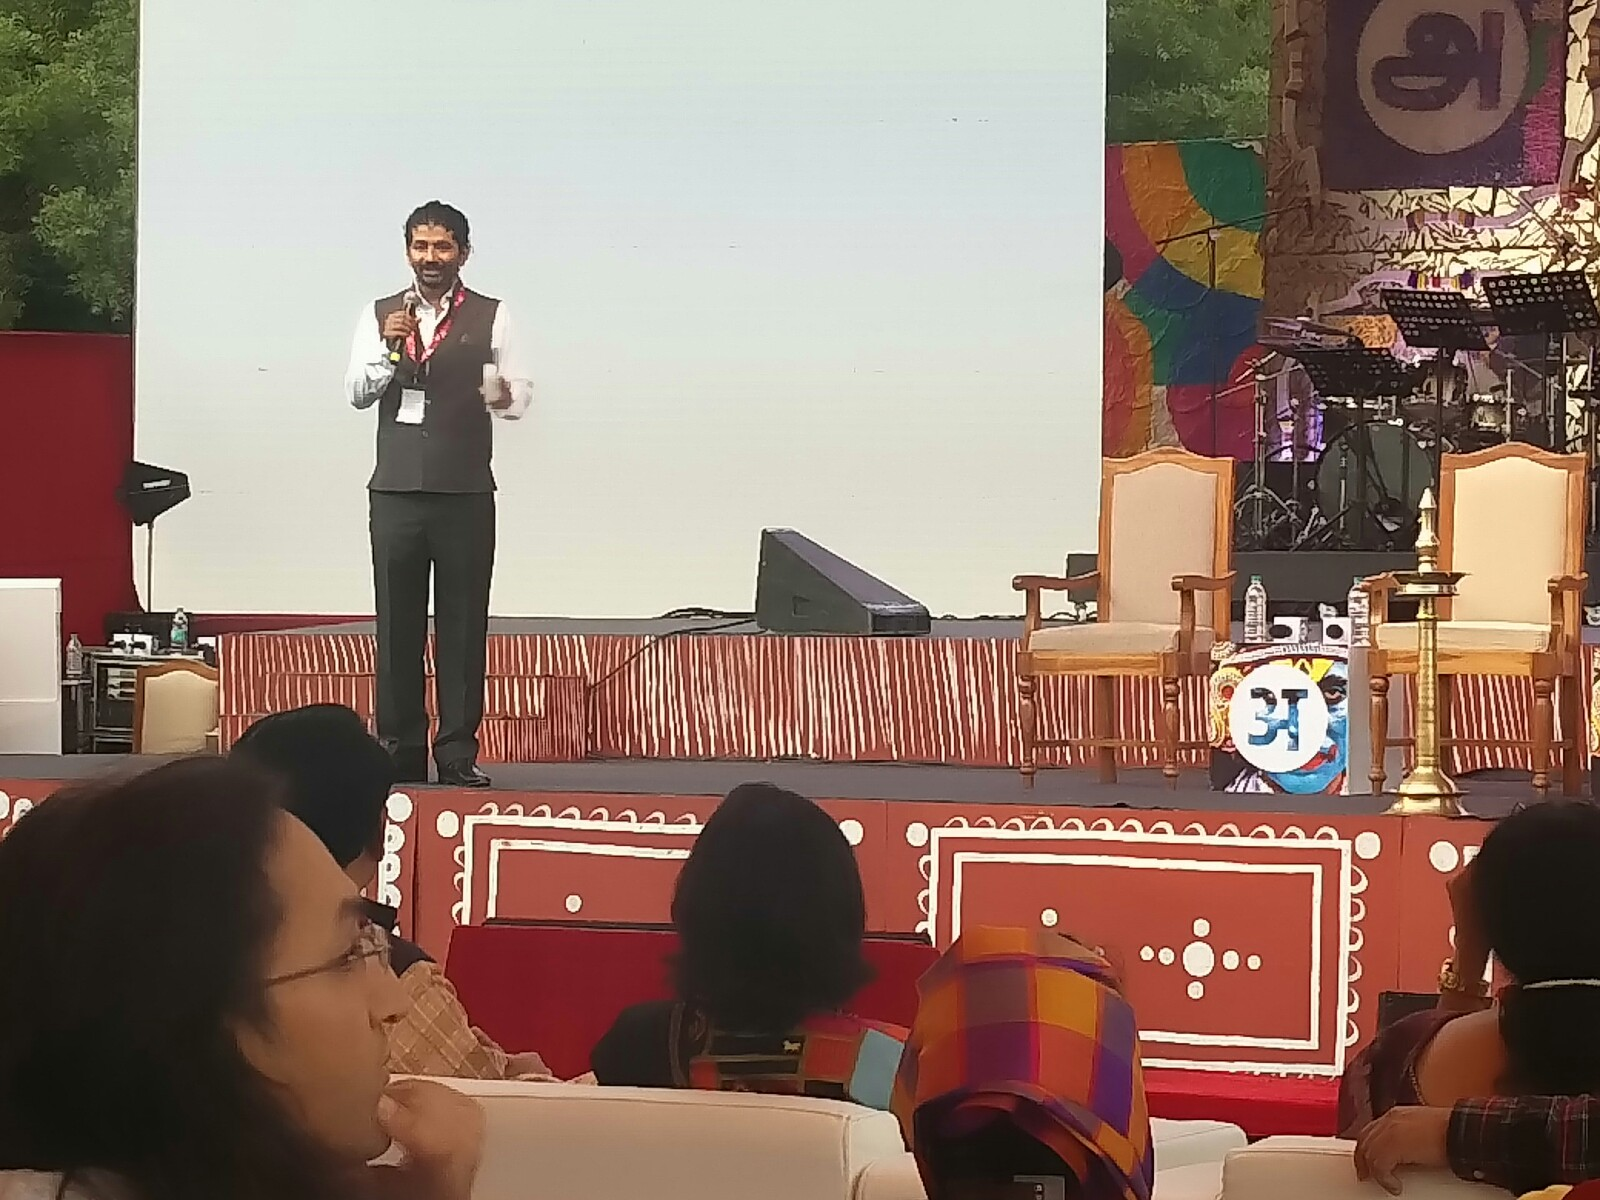 Nikhil Singh Rajput, maker of the documentary Blood Buddhas, onstage at Arth Culture Fest. Photo: Connected to India